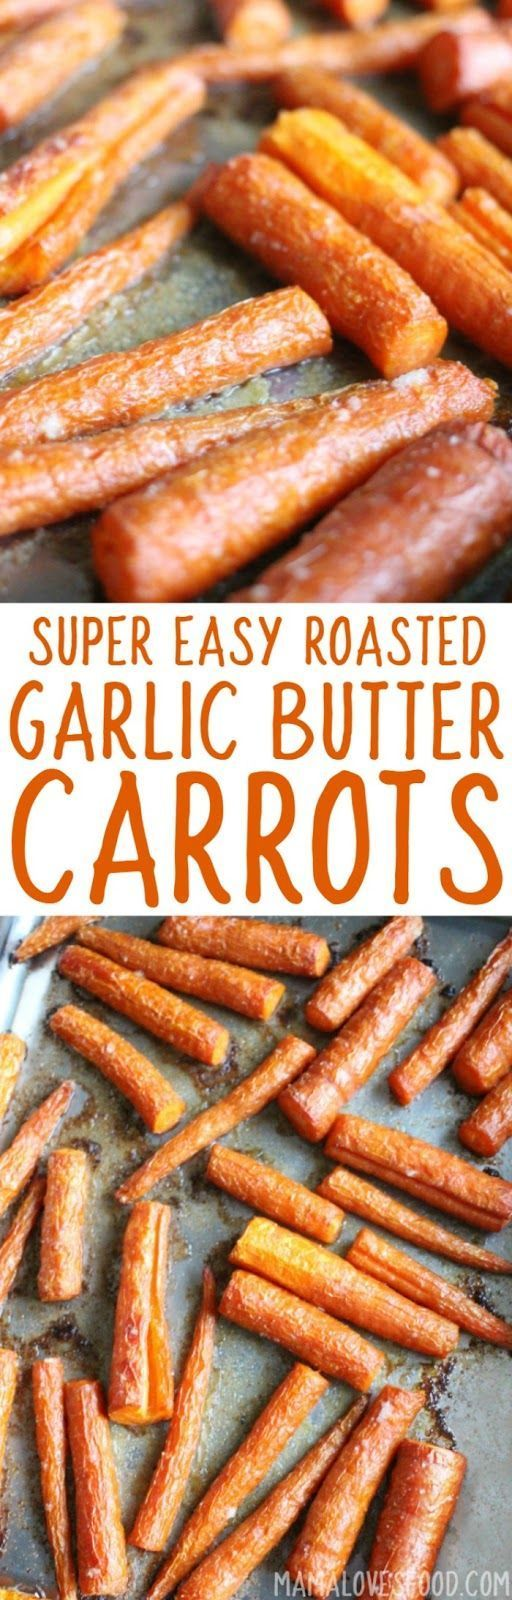 whole family loved it! - Easy Oven Roasted Garlic Butter Carrots Recipe - How to Bake Carrots in the Oven